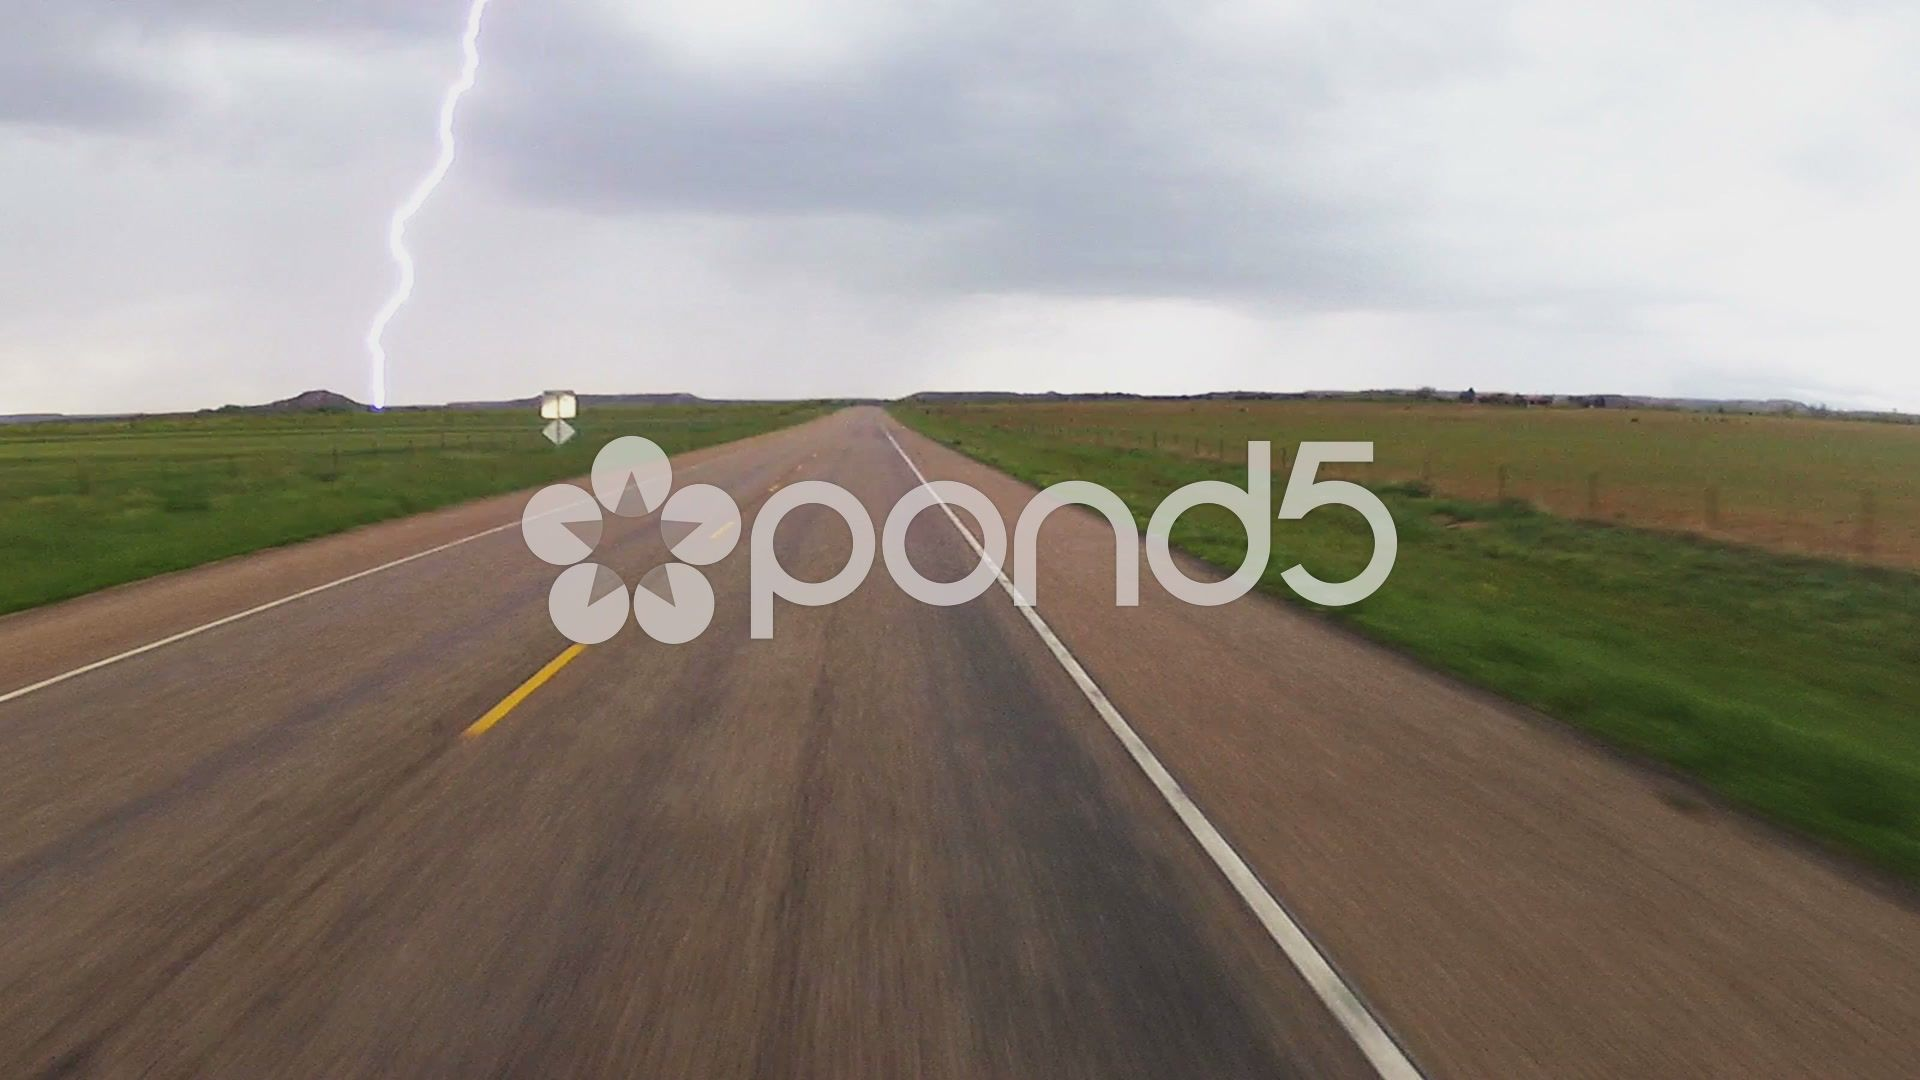 Driving west texas road with lightning strike ahead